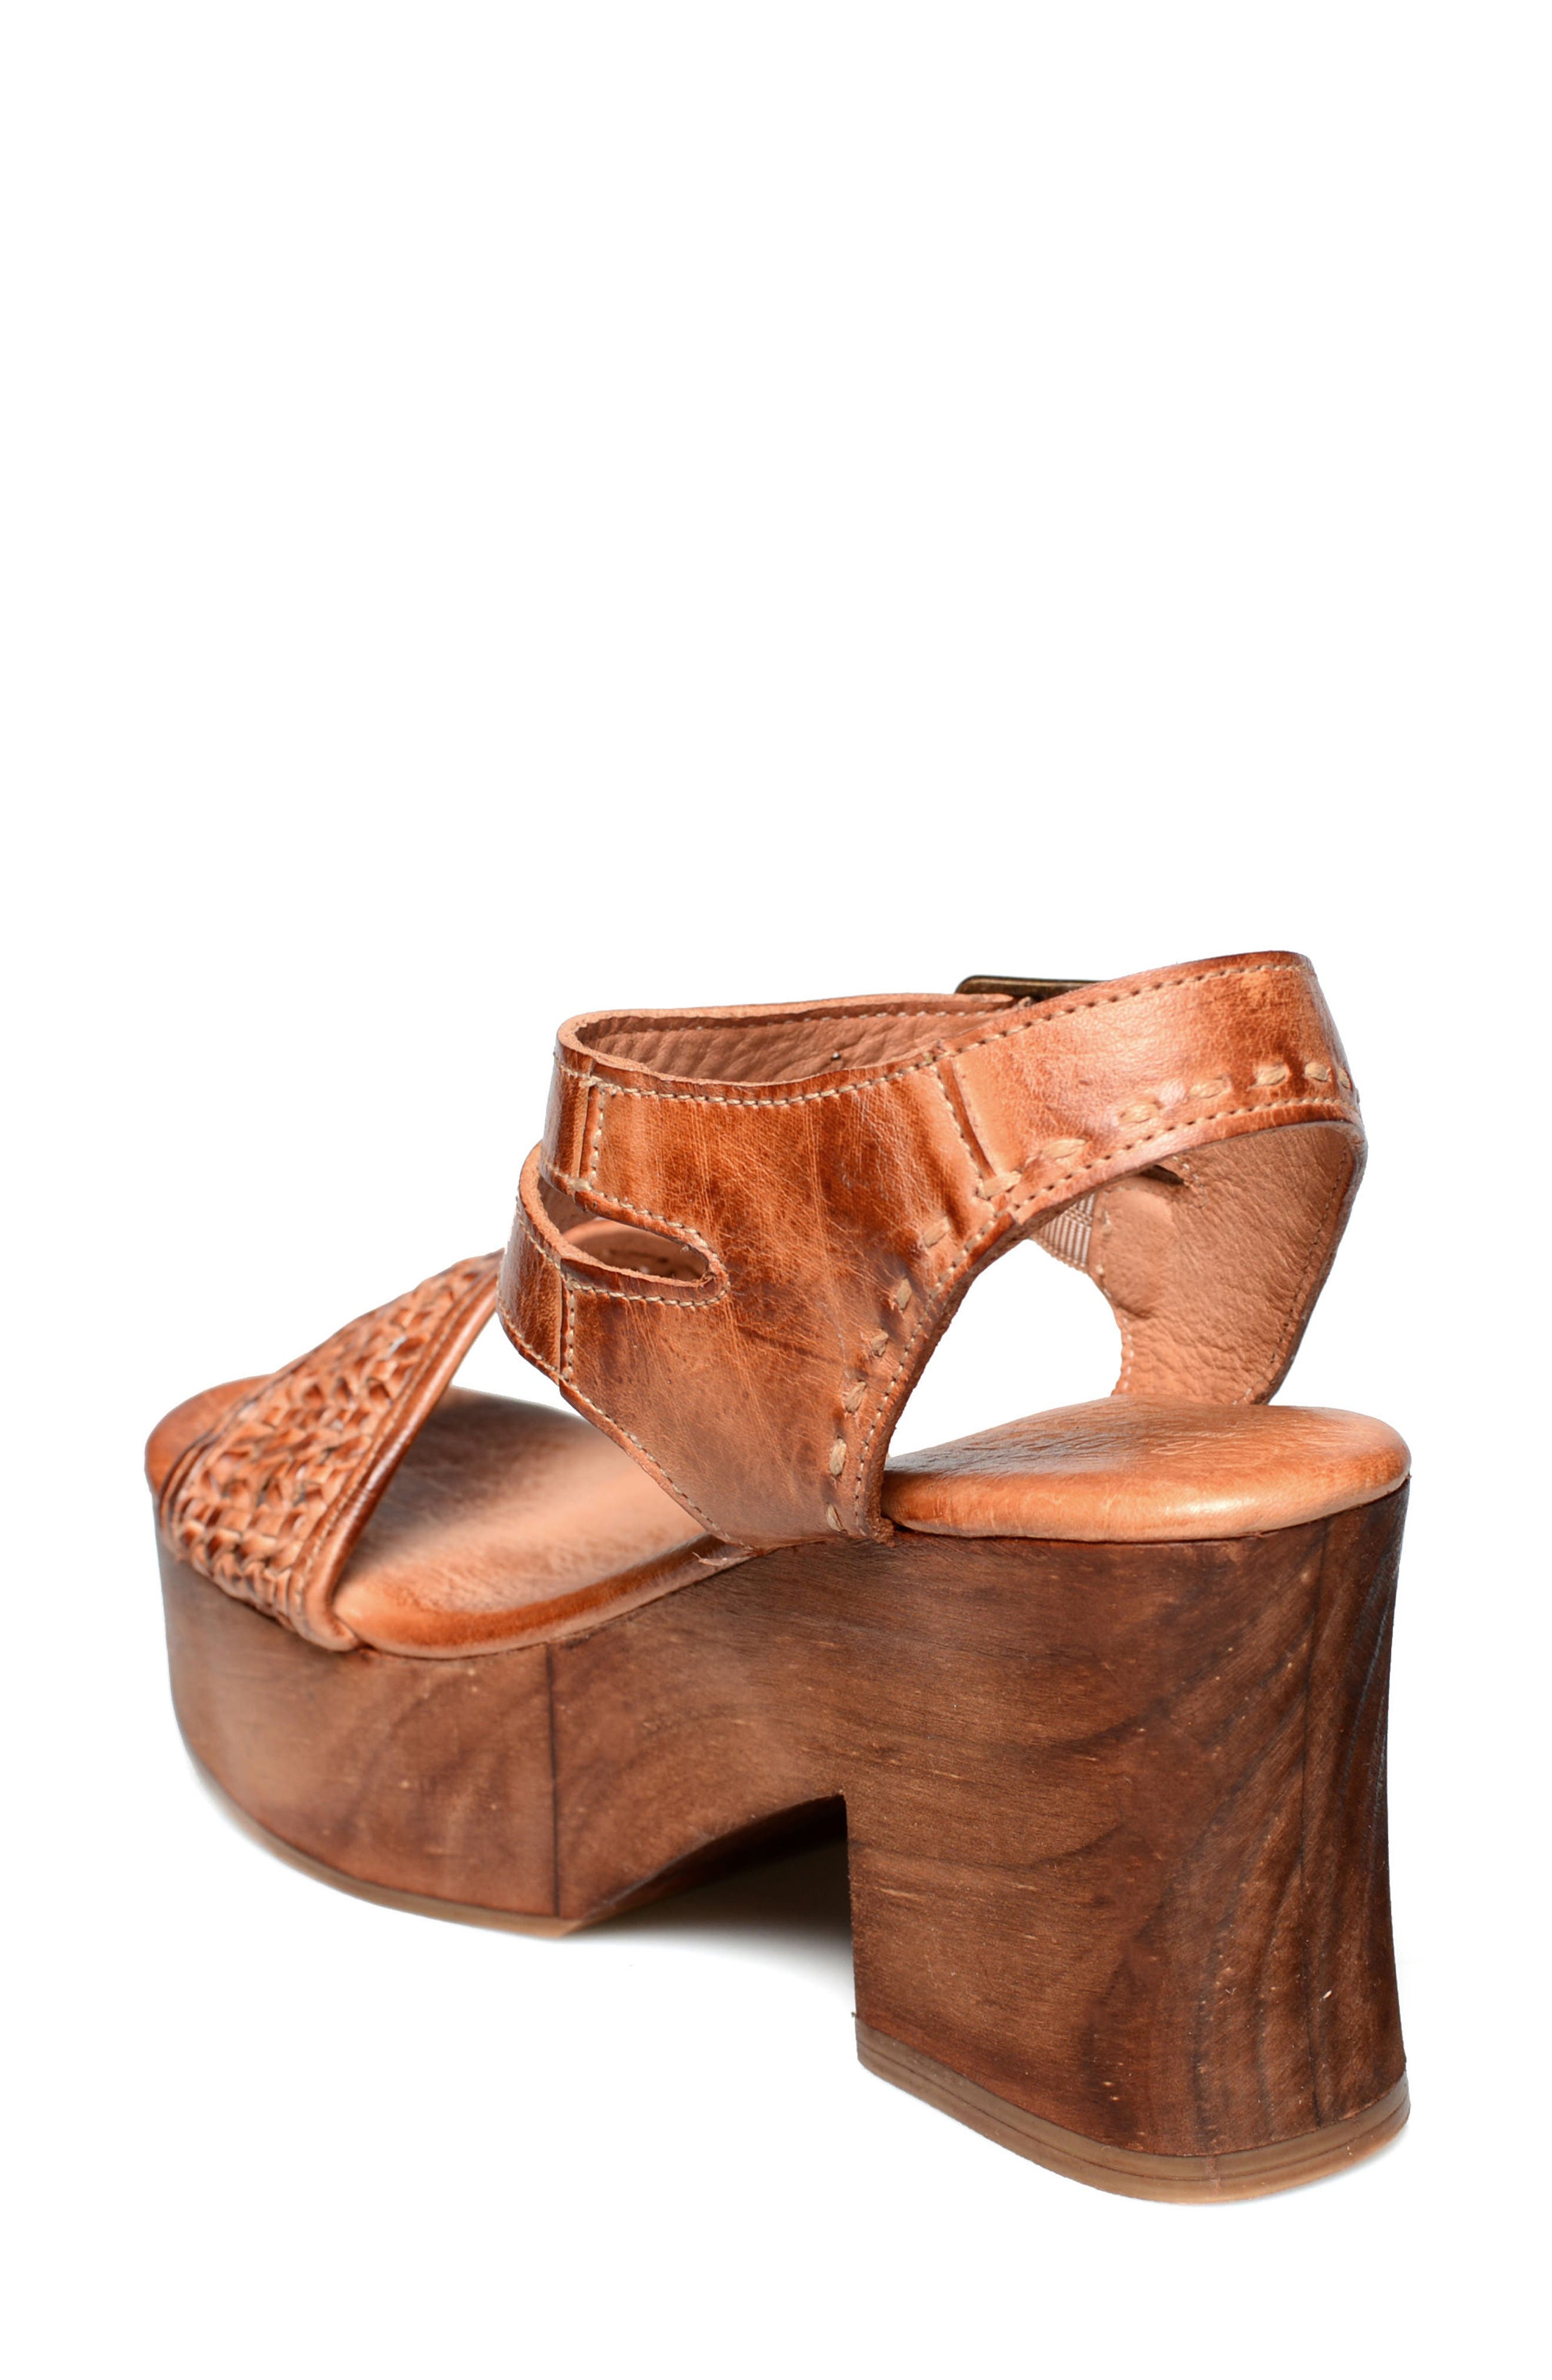 Alternate Image 2  - Bed Stu Kenya Platform Sandal (Women)